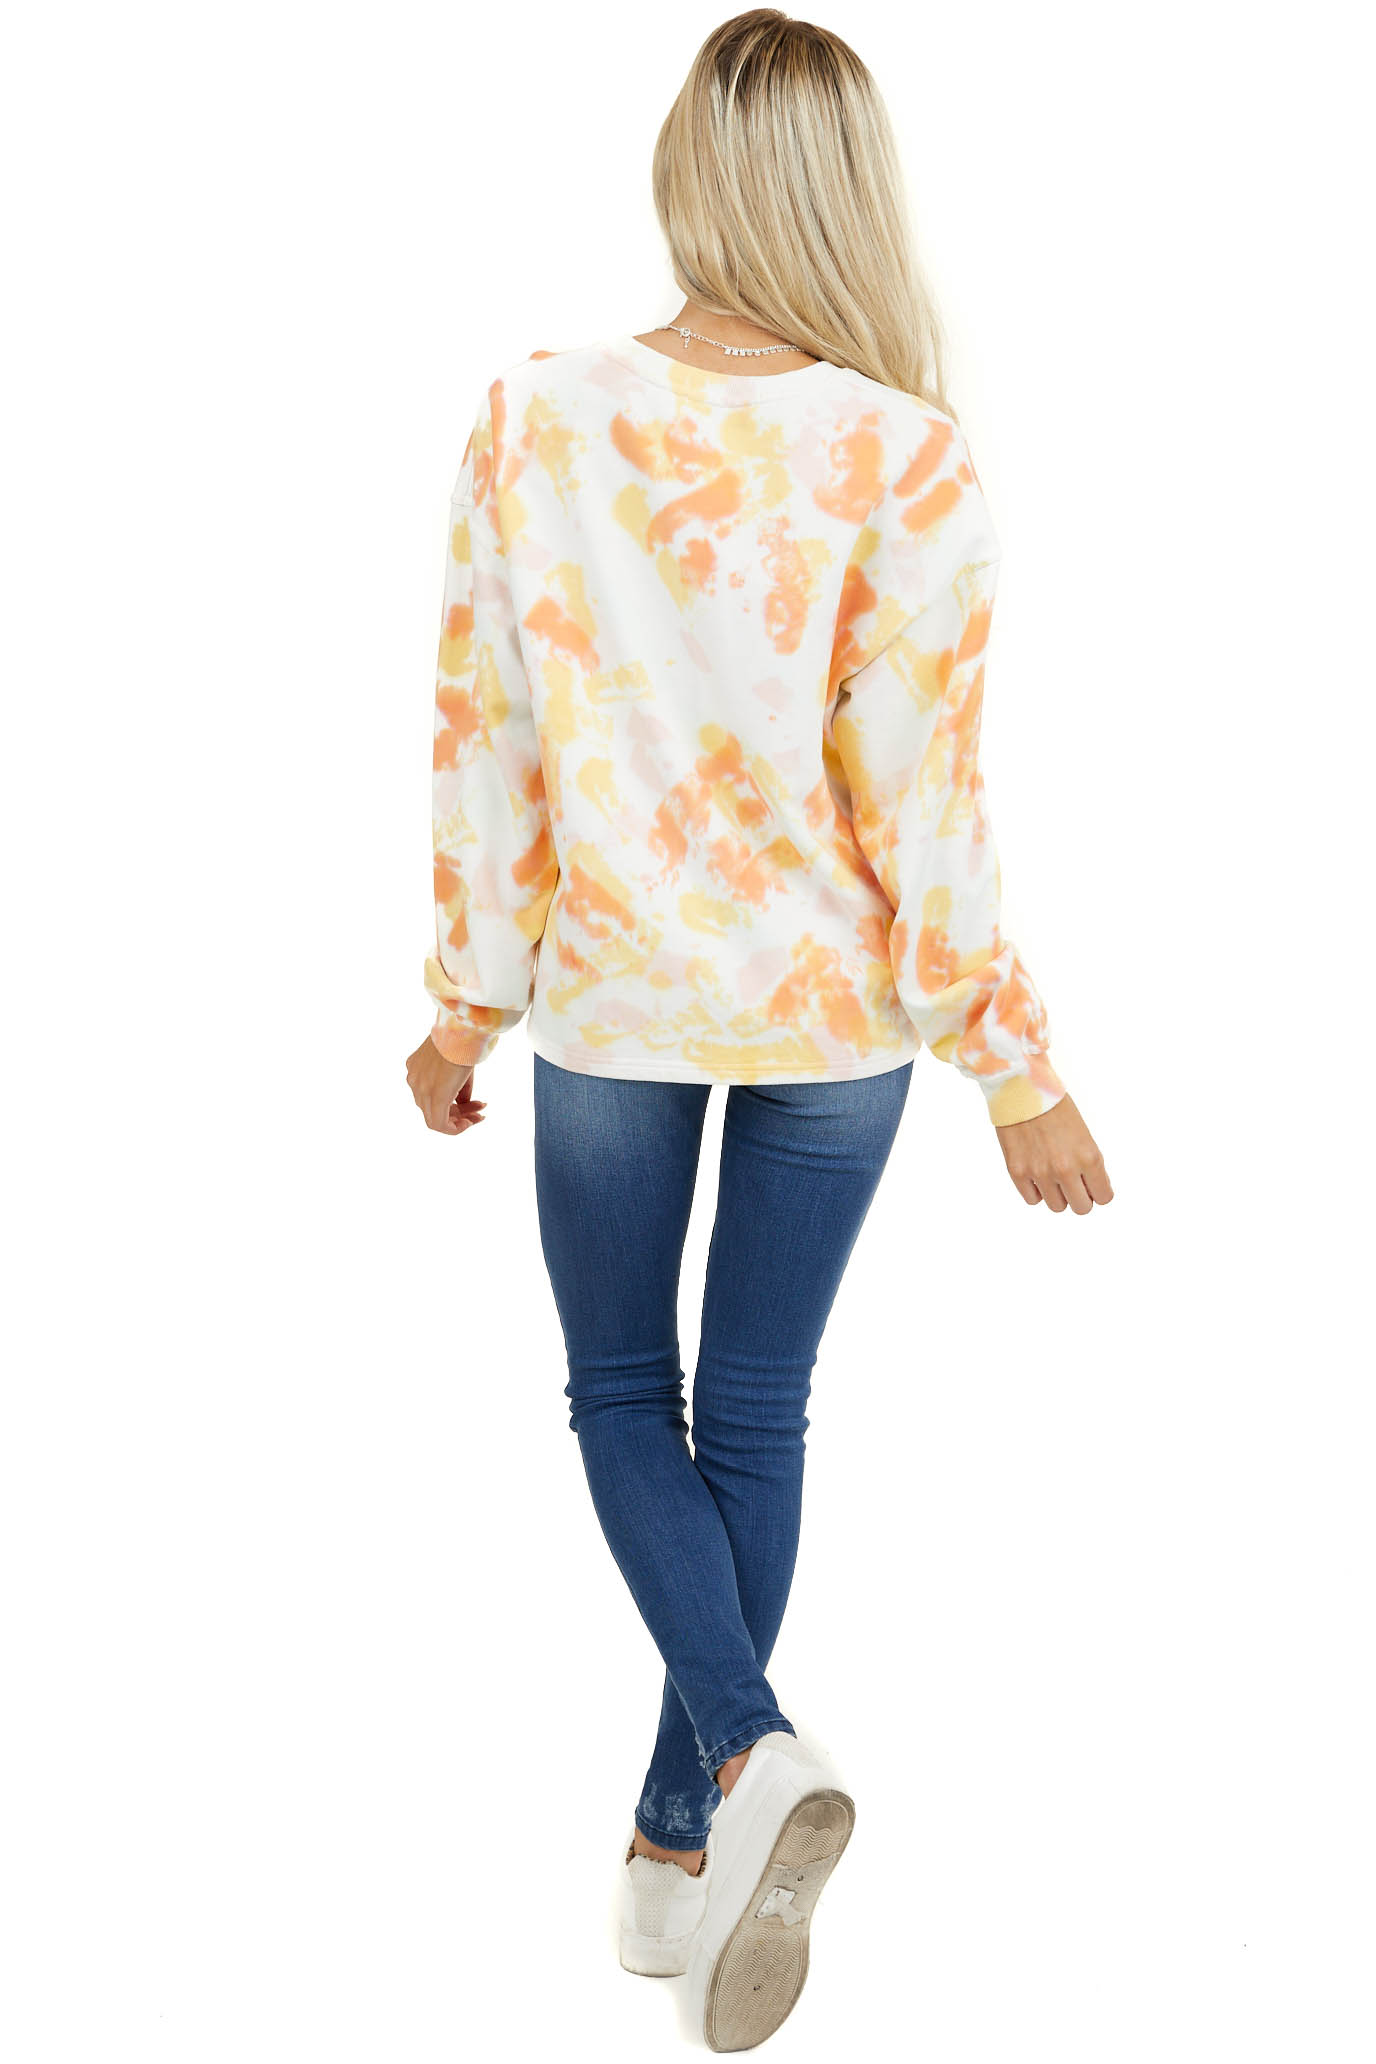 Ivory Multicolor Tie Dye Knit Sweatshirt with Long Sleeves